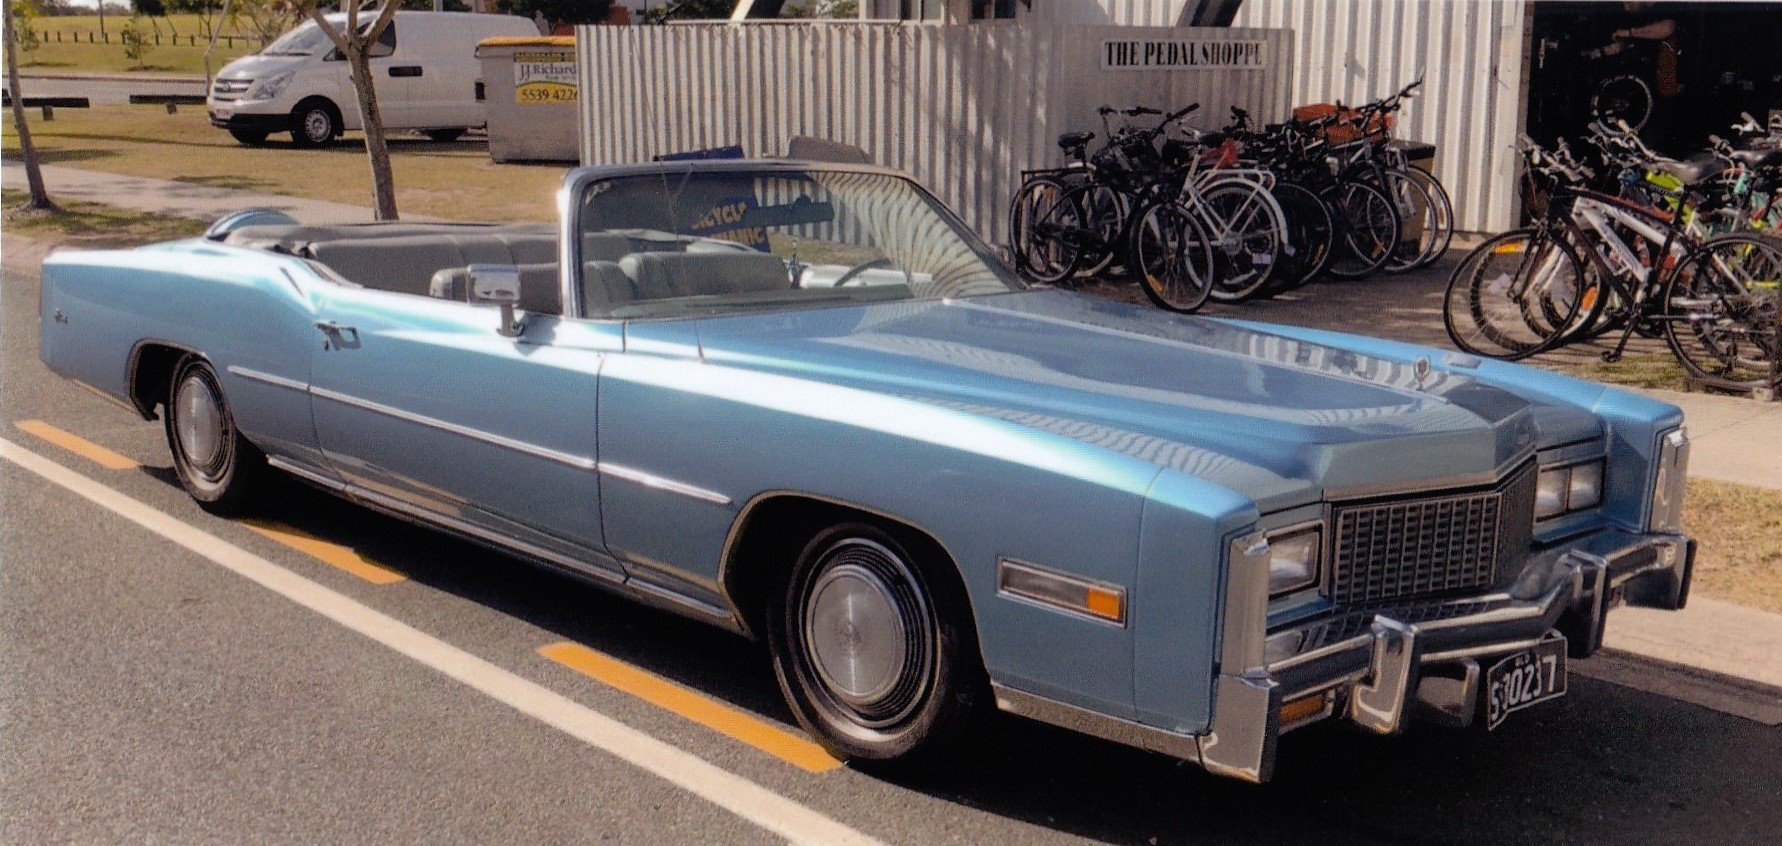 Cadillac Cars for sale in Australia - JUST CARS